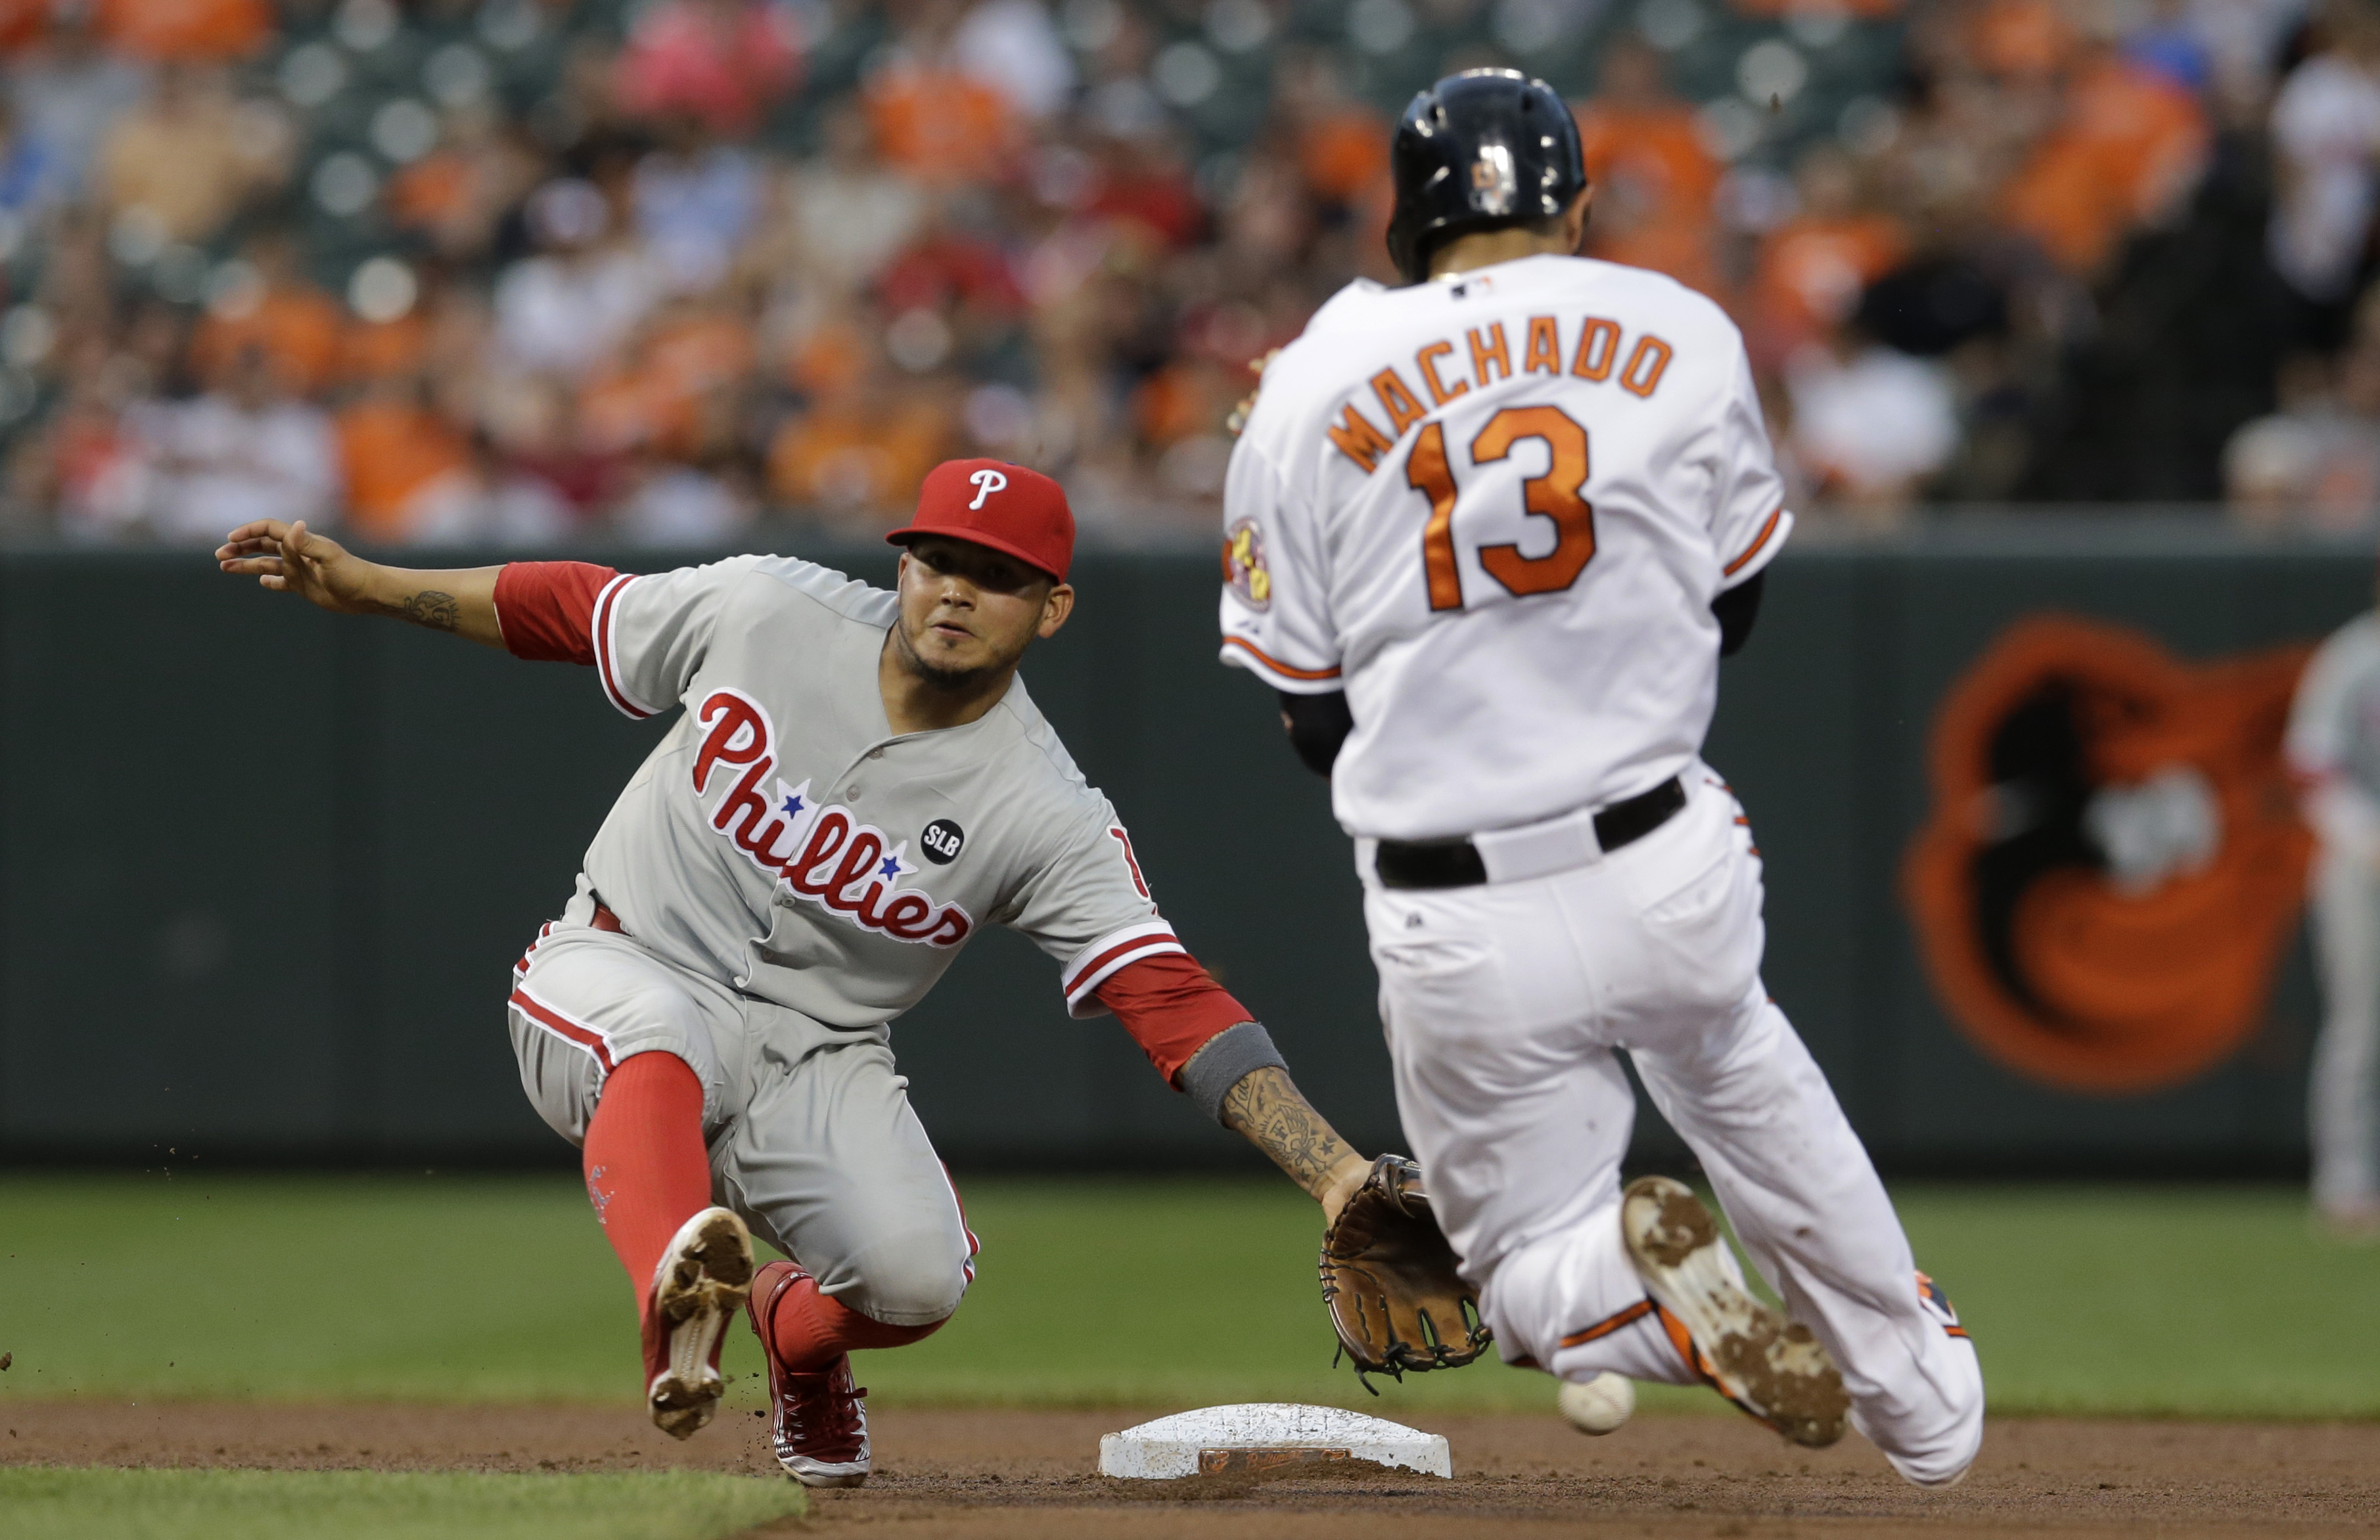 Philadelphia Phillies shortstop Freddy Galvis, left, tries but can't catch a wide throw from catcher Cameron Rupp as Baltimore Orioles' Manny Machado steals second base in the fourth inning of an interleague baseball game, Monday, June 15, 2015, in Baltim